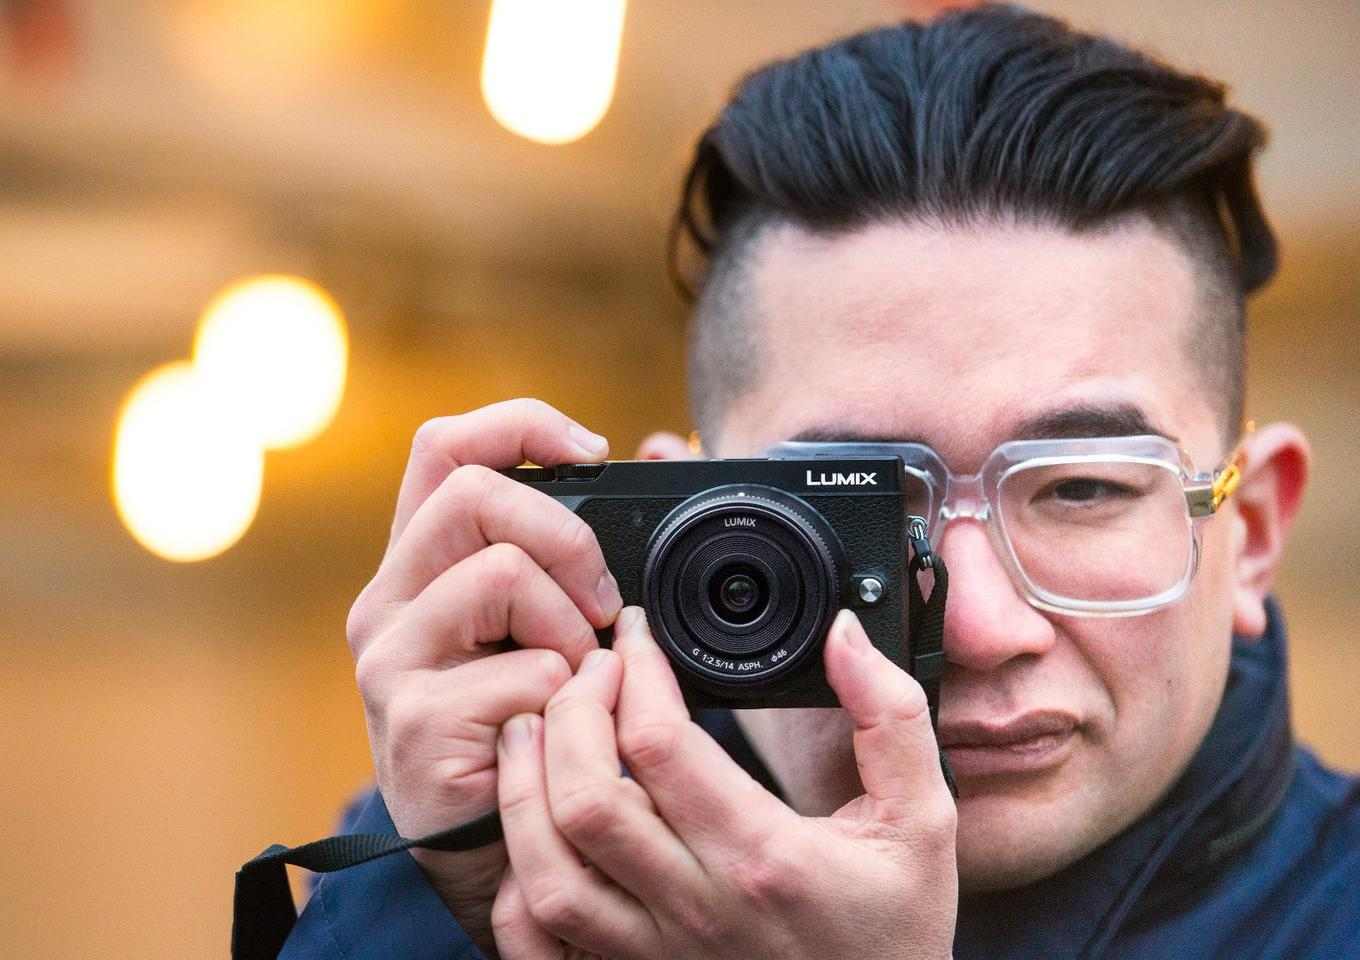 The Panasonic Lumix GX80 /GX85 is a compact mirrorless camera